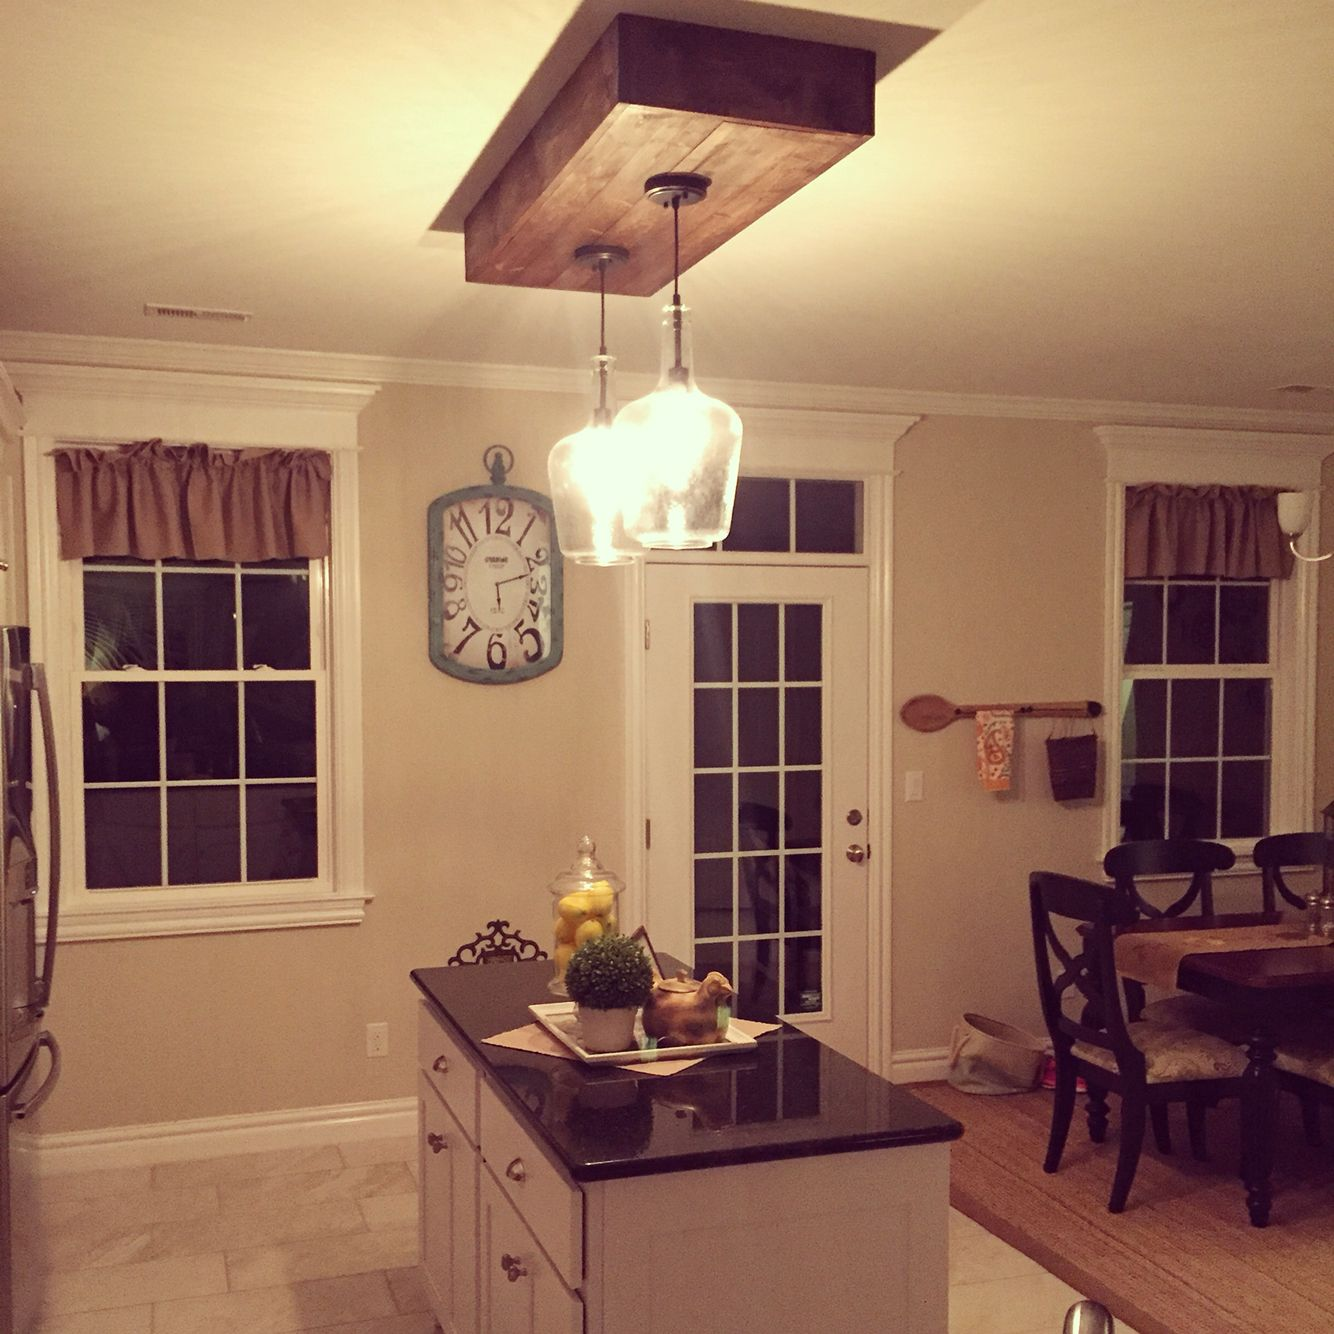 replaced the fluorescent lighting...Kitchen island lighting ...